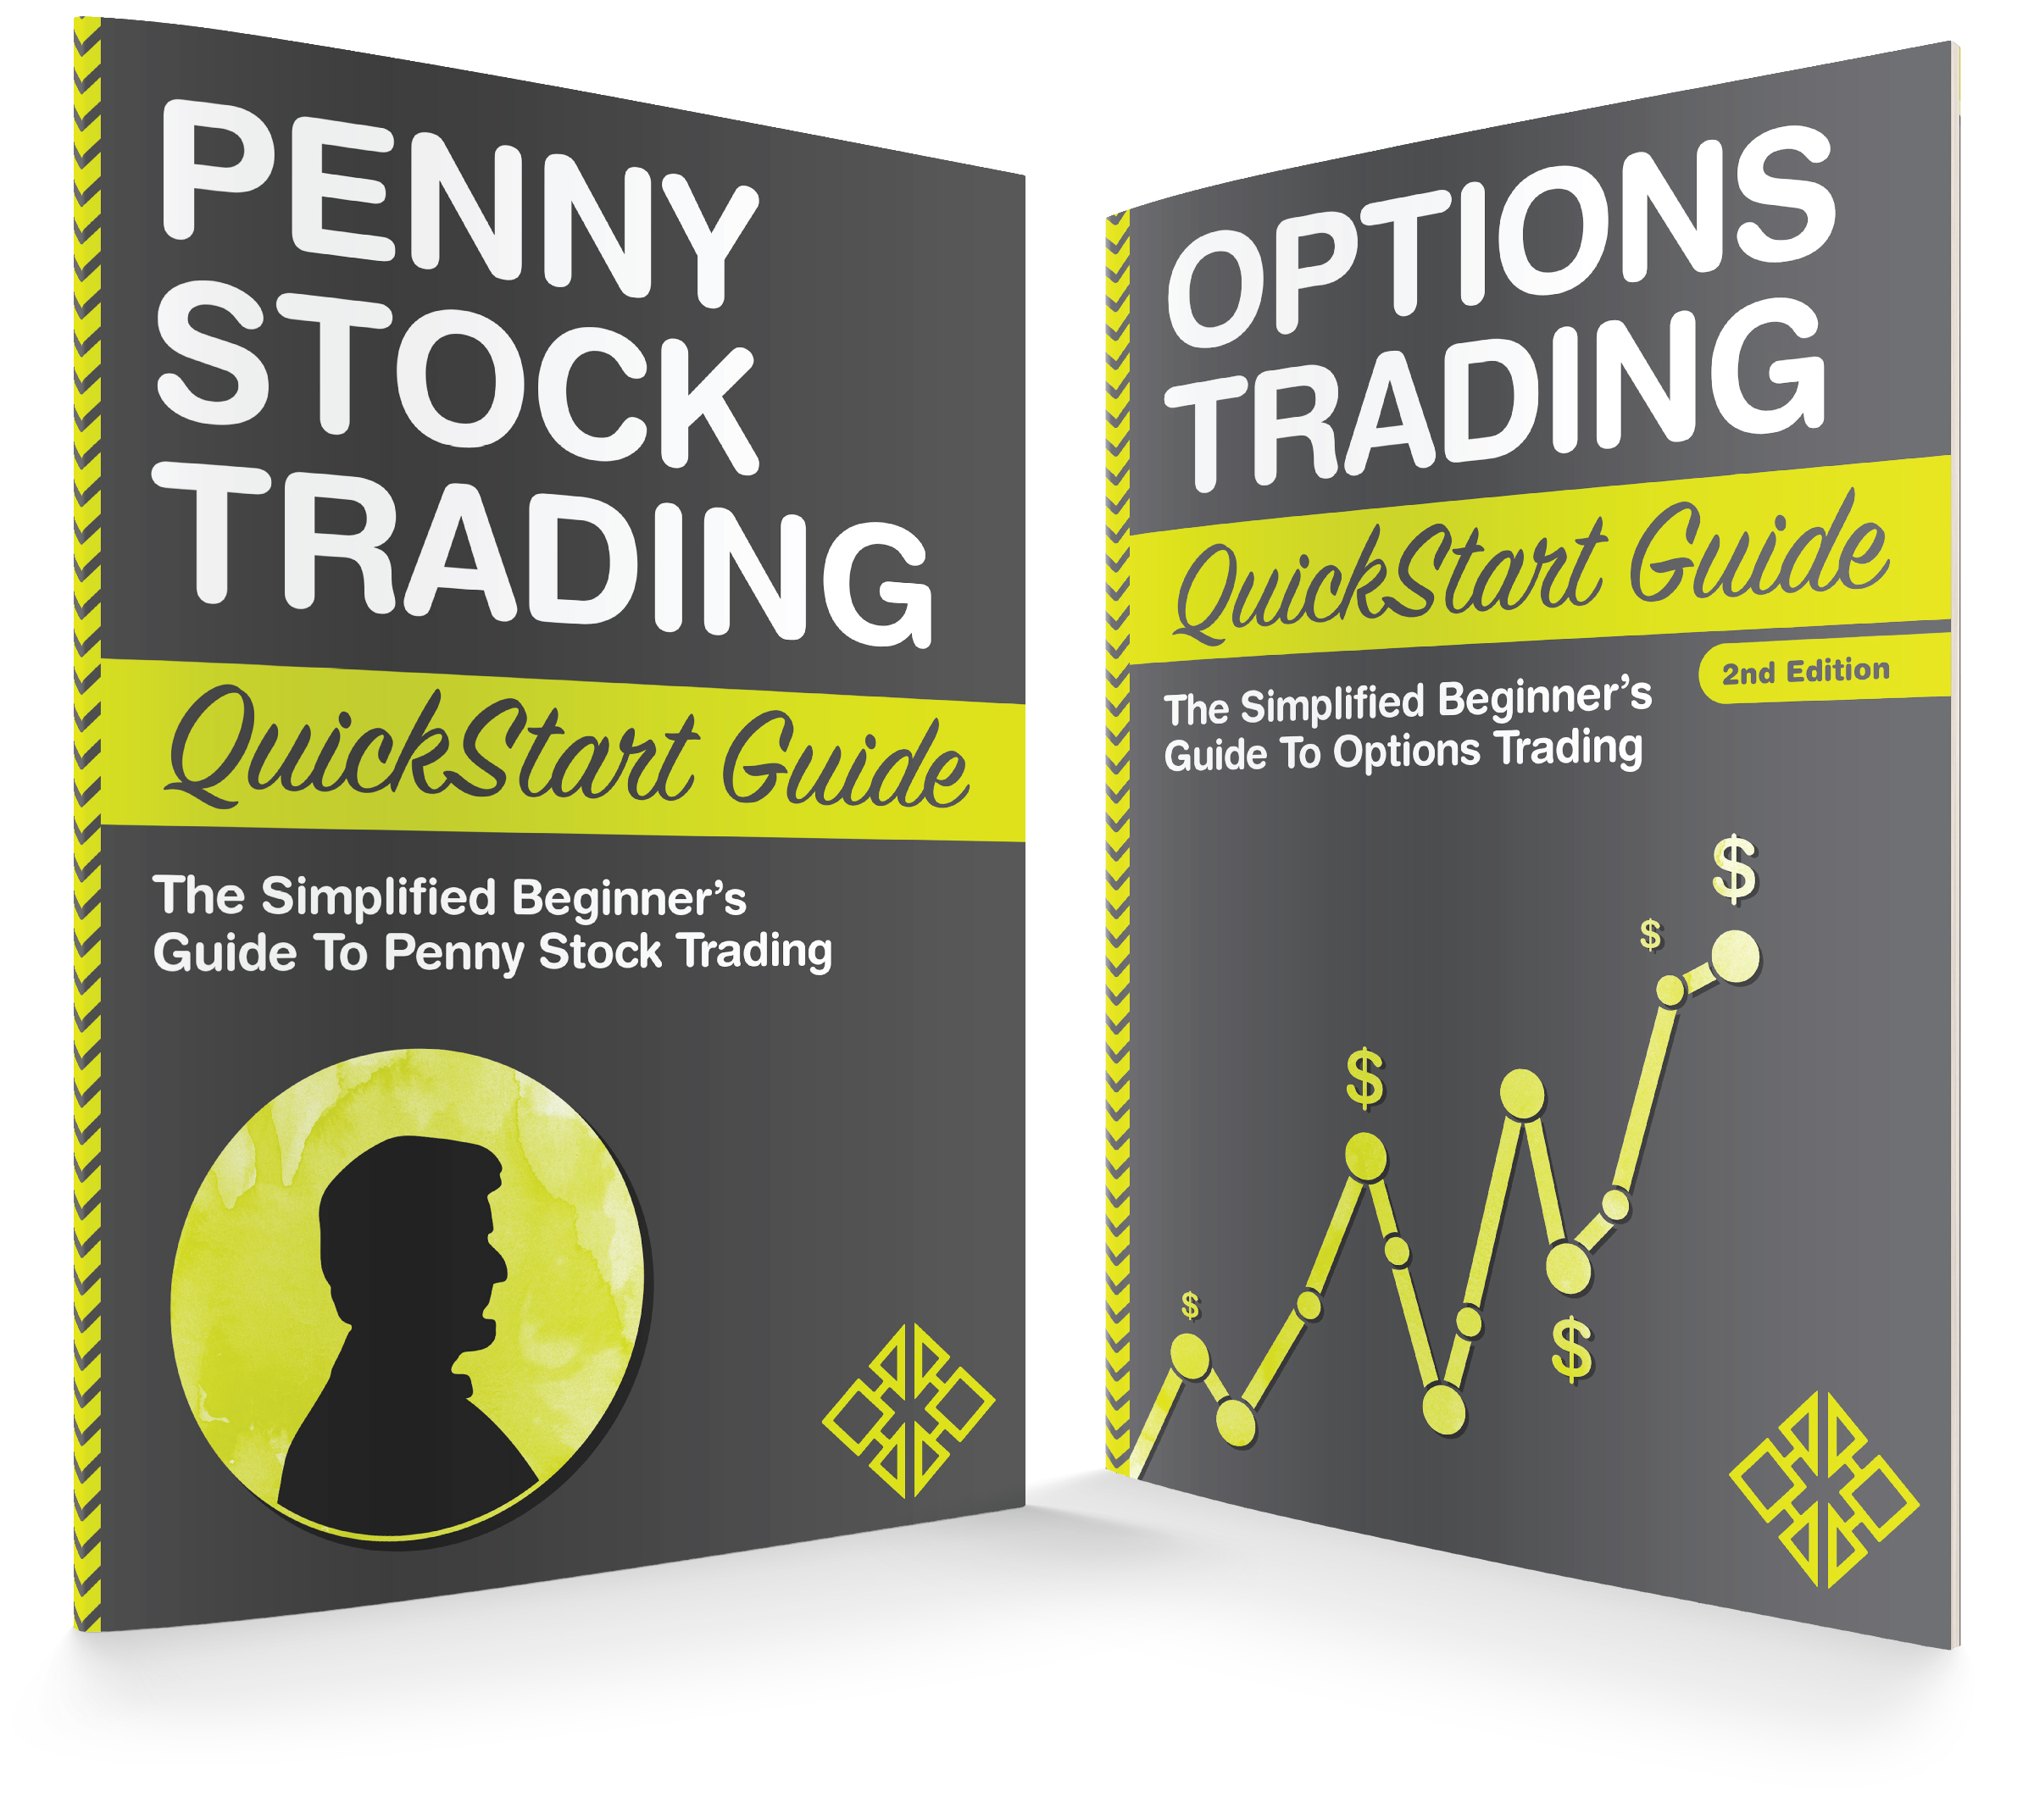 Does optionsxpress trade penny stocks